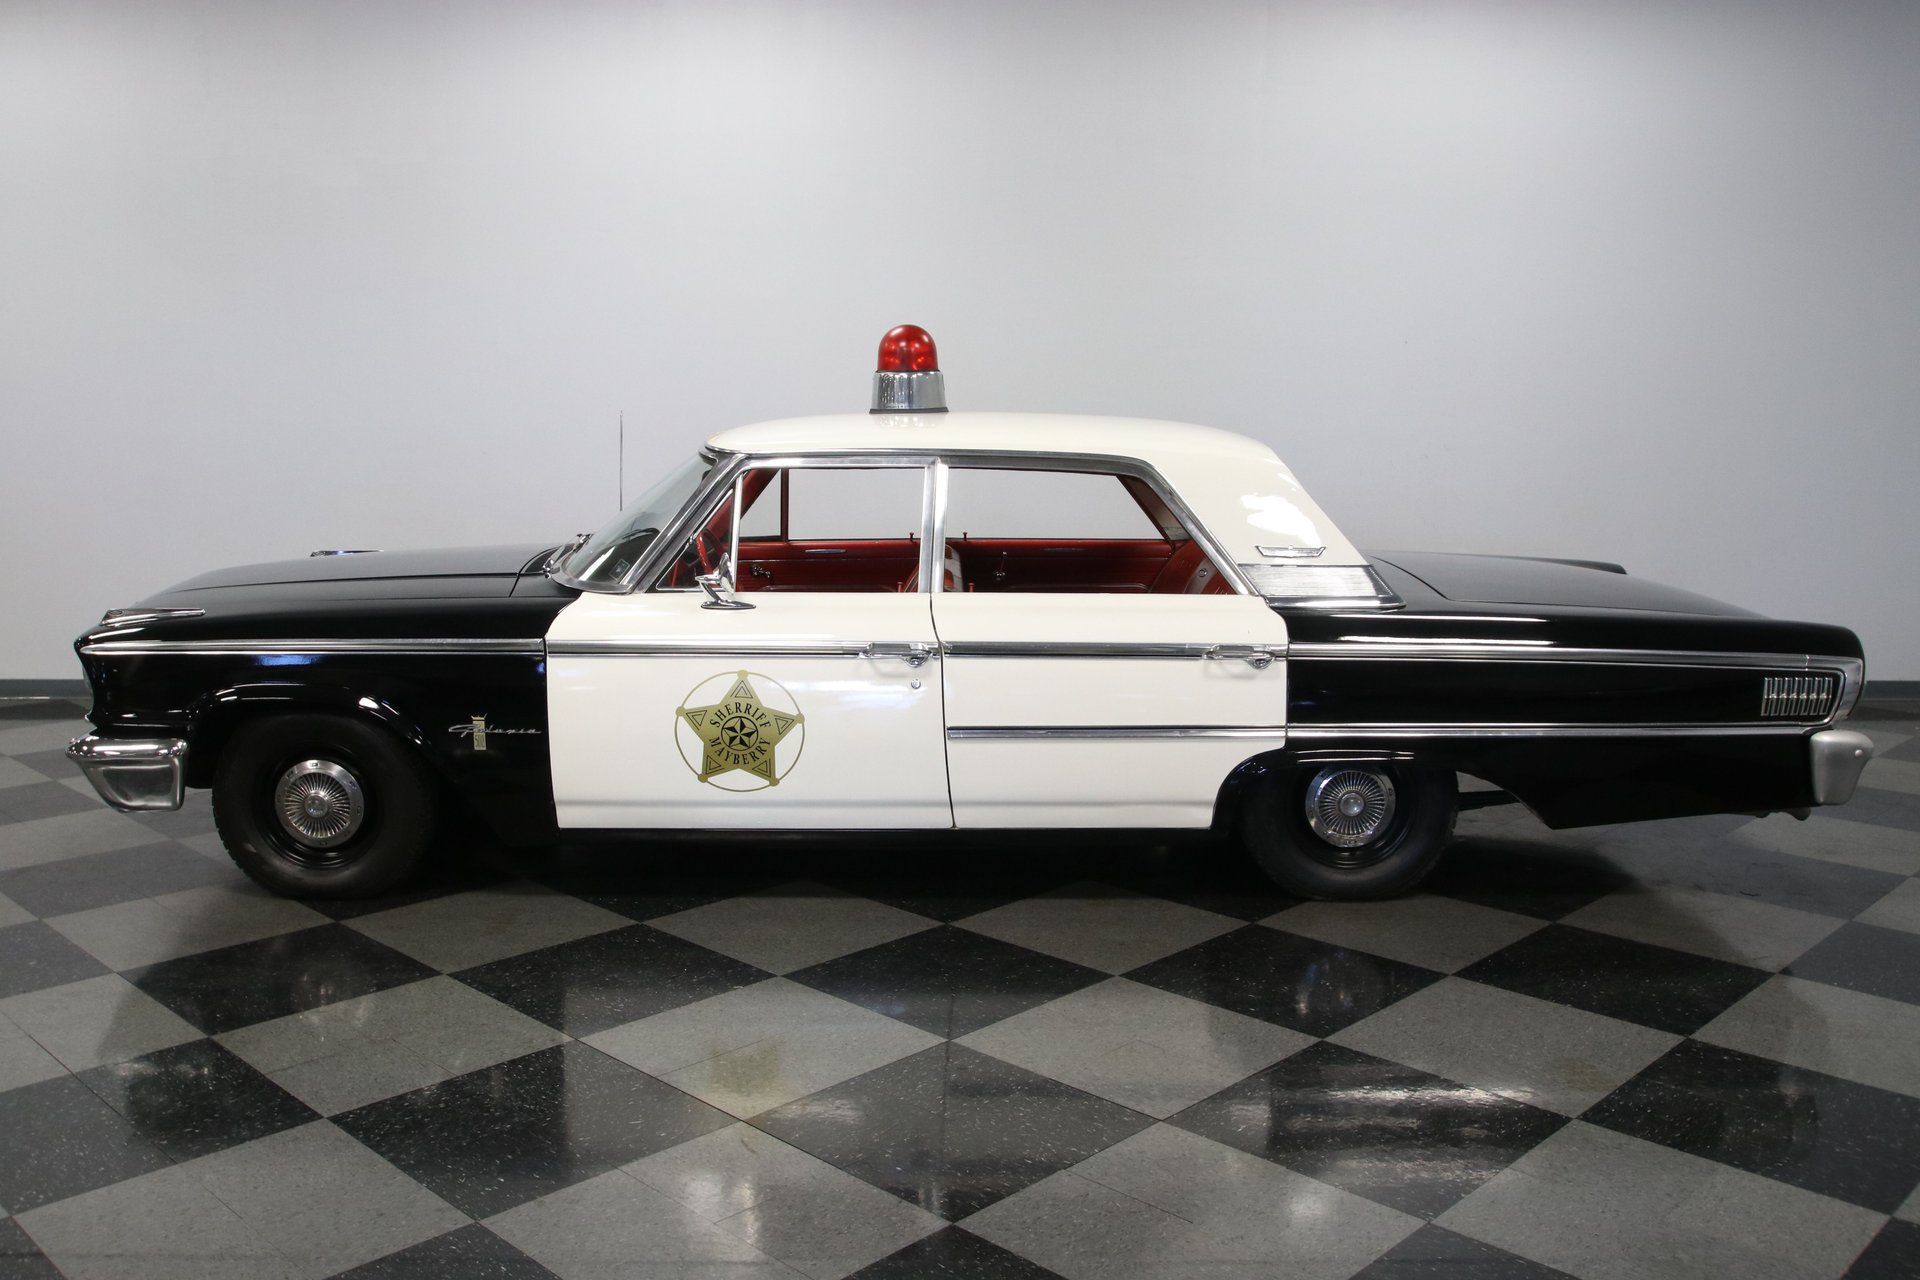 1963 ford galaxie 500 mayberry police car